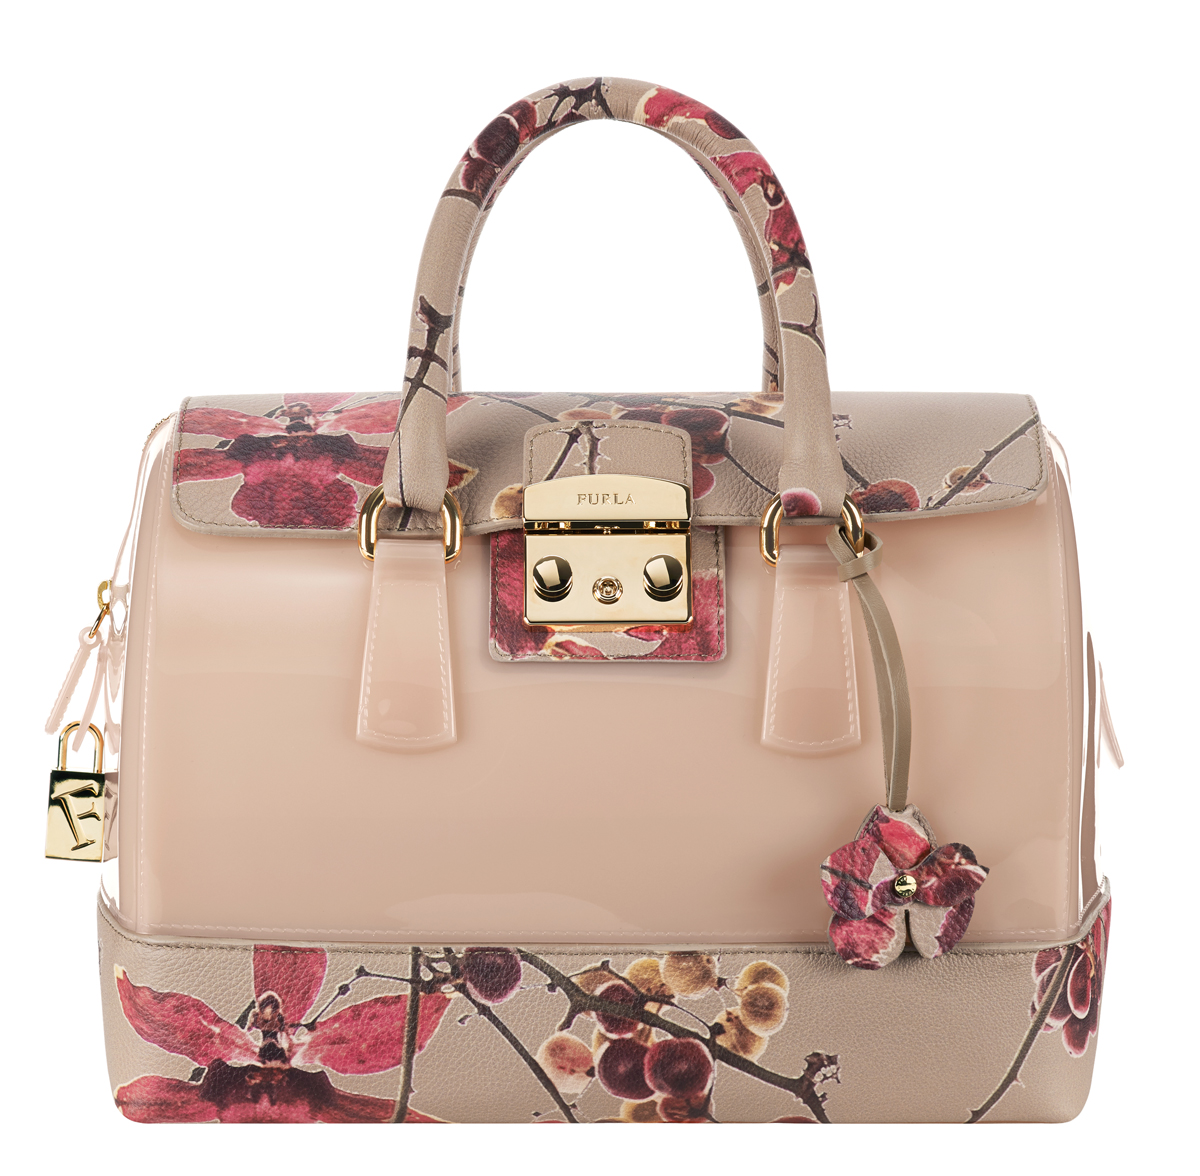 Weekly obsession: Furla Candy Bags in Mirto